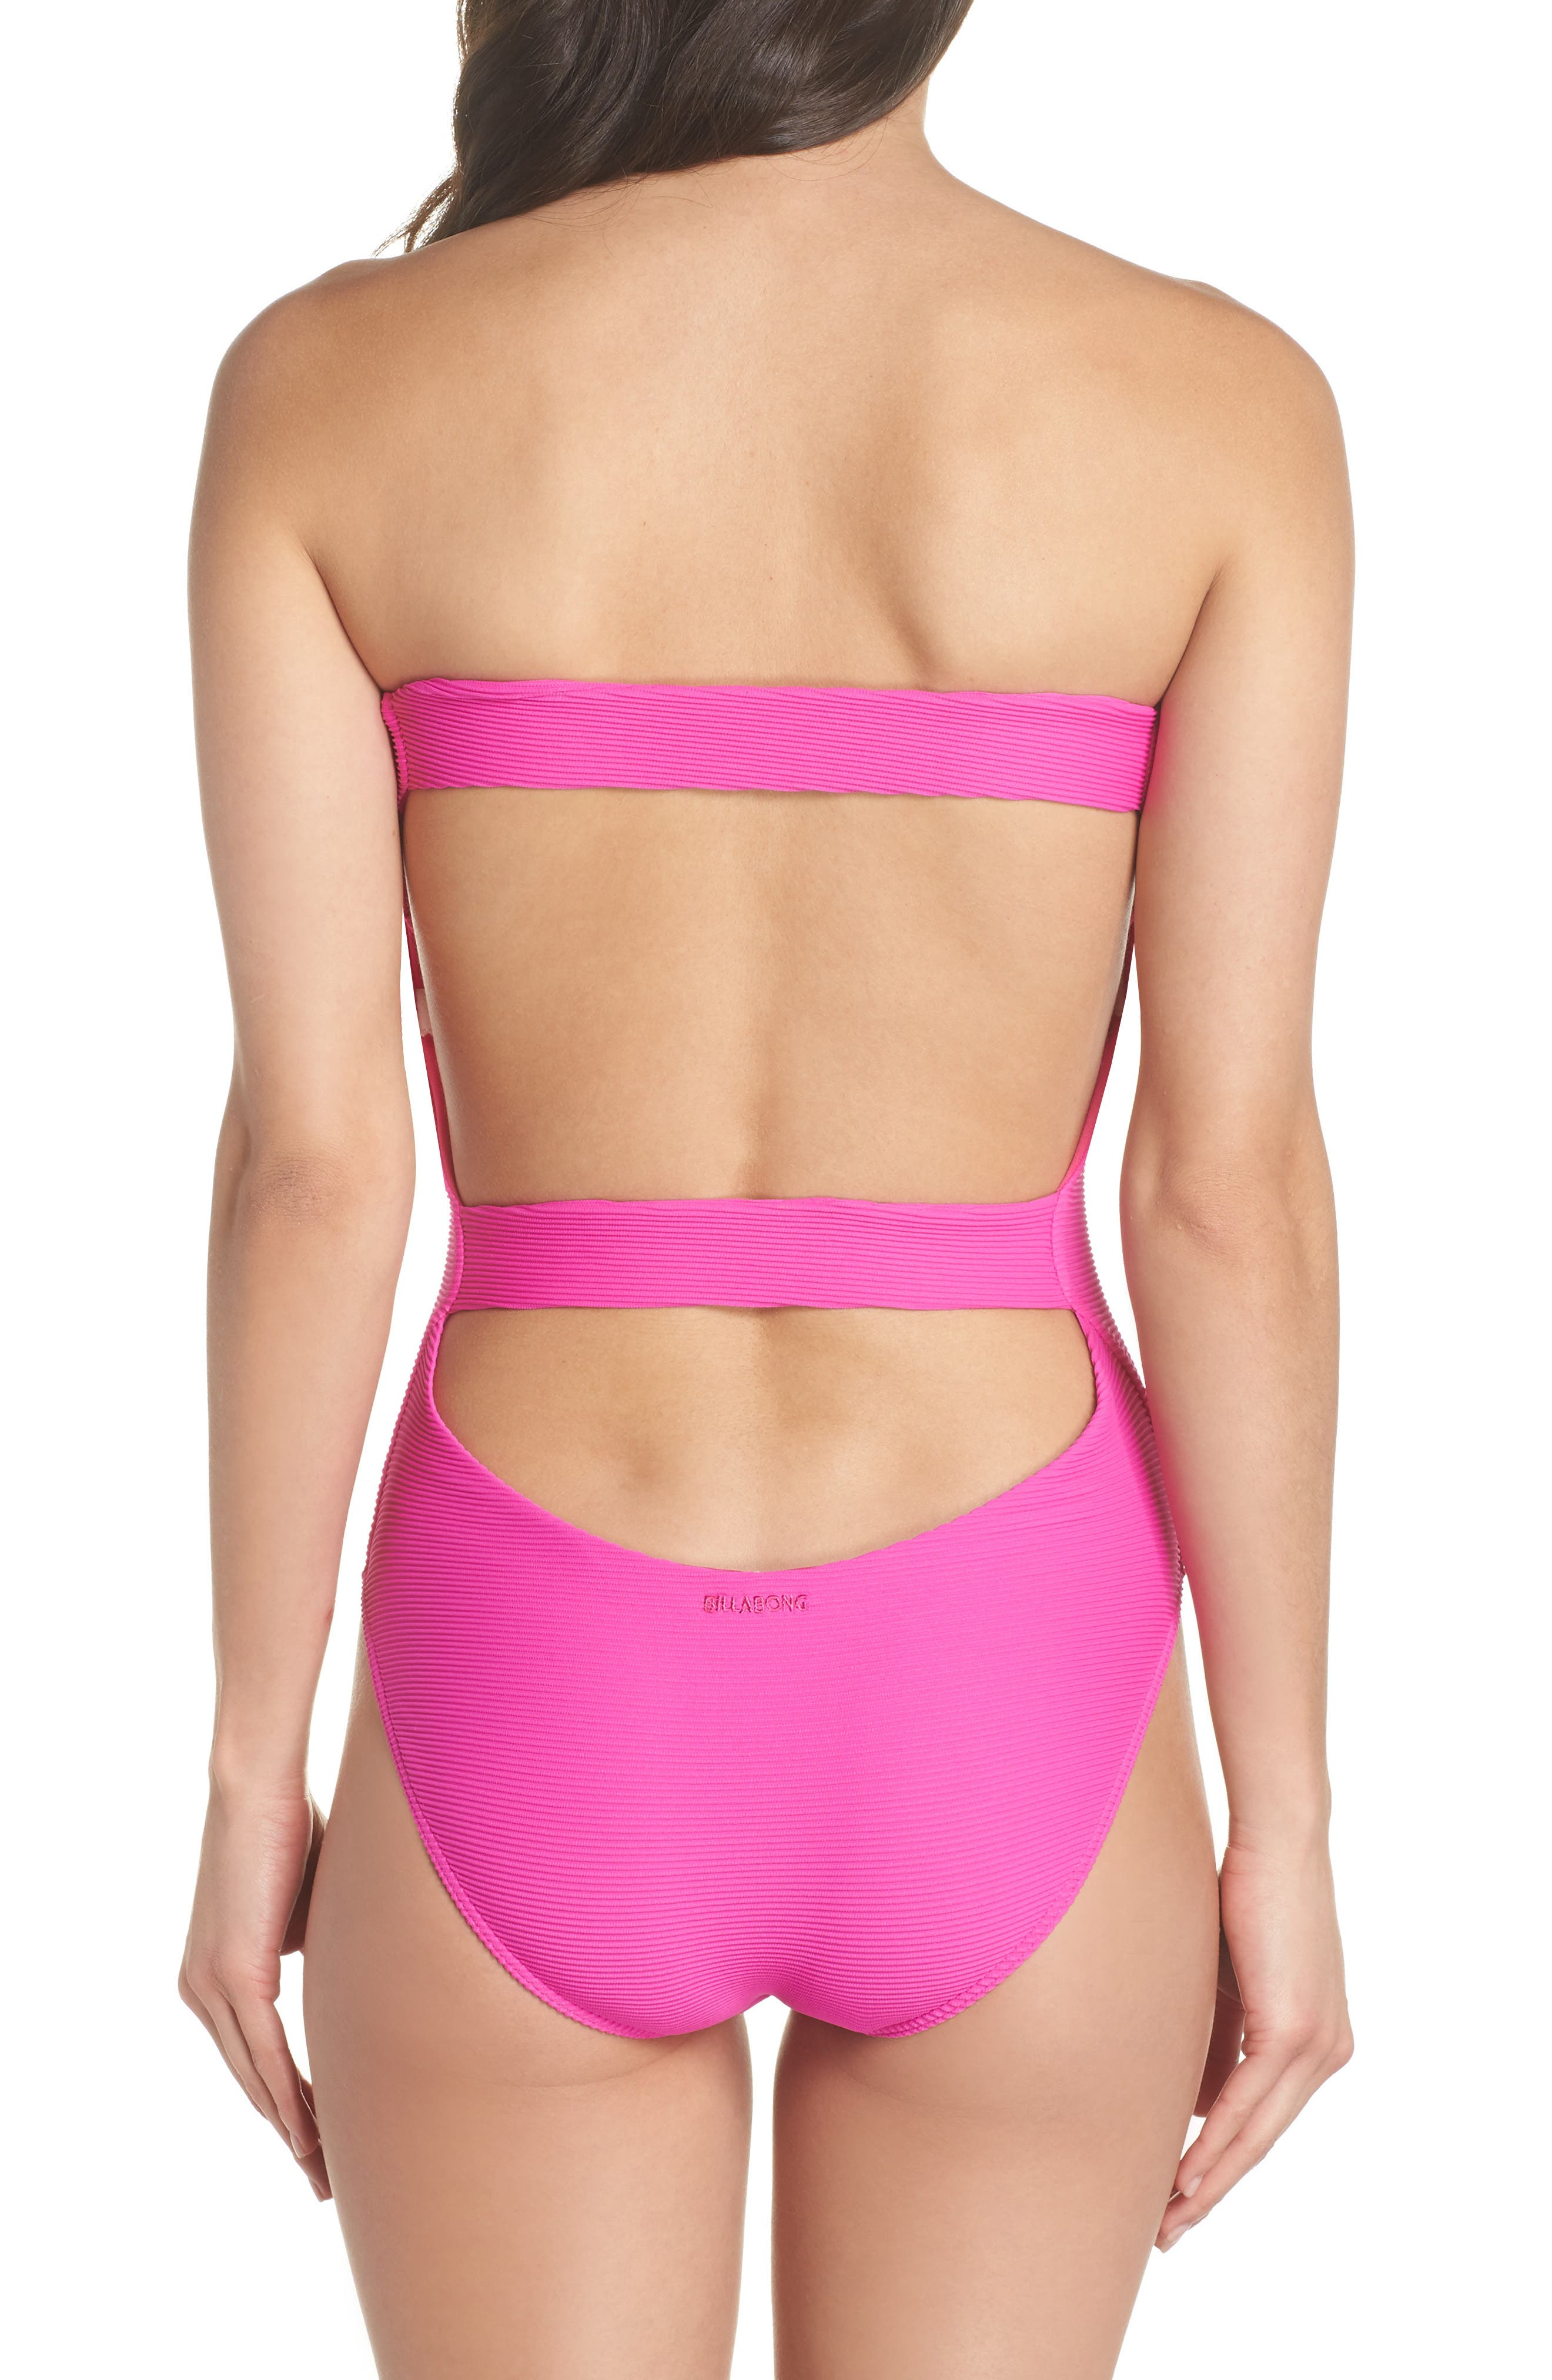 Tanlines Strapless One-Piece Swimsuit,                             Alternate thumbnail 2, color,                             Rebel Pink